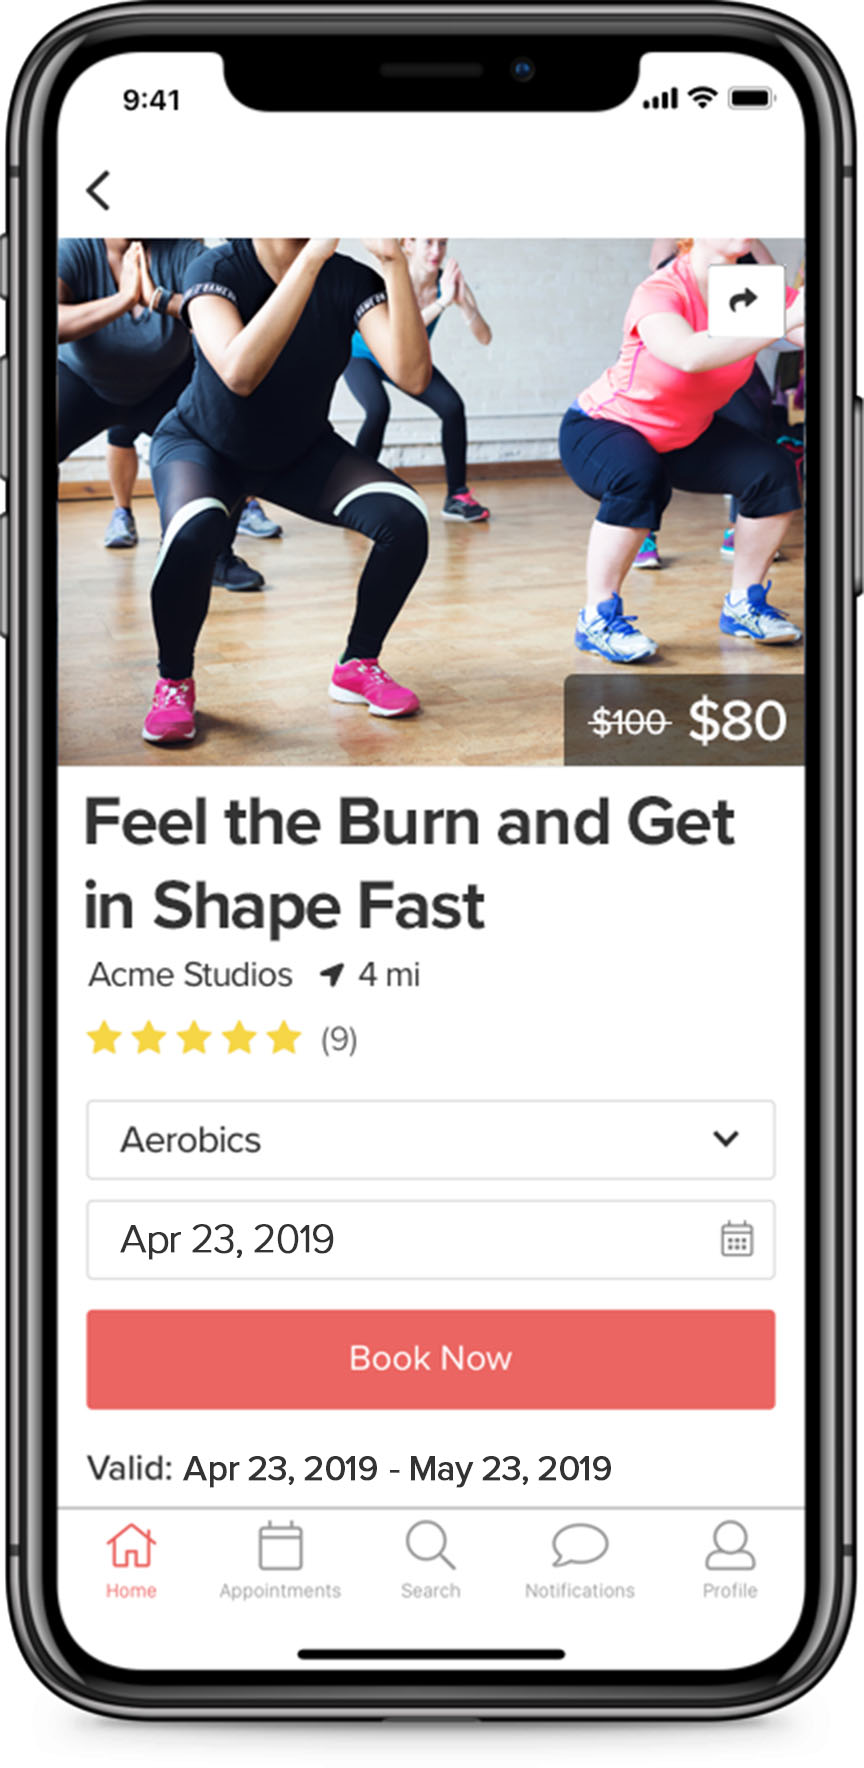 Gym Marketing Software